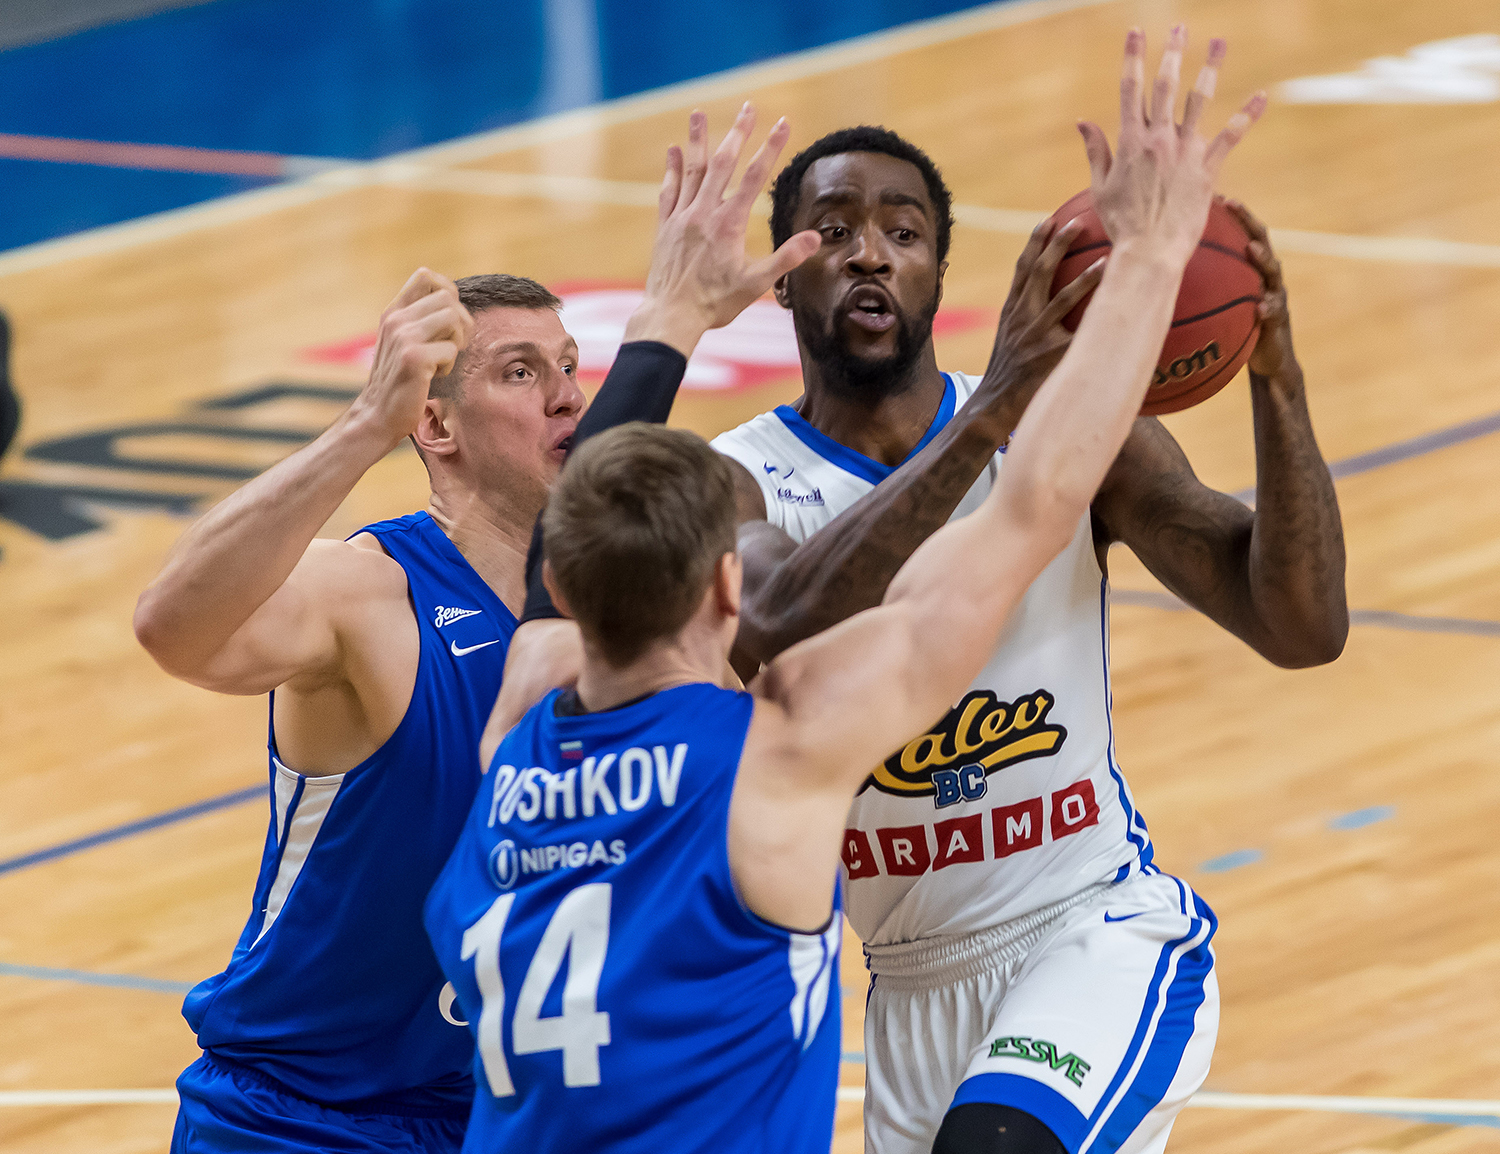 Kalev Routs Zenit To Clinch First-Ever Playoff Berth